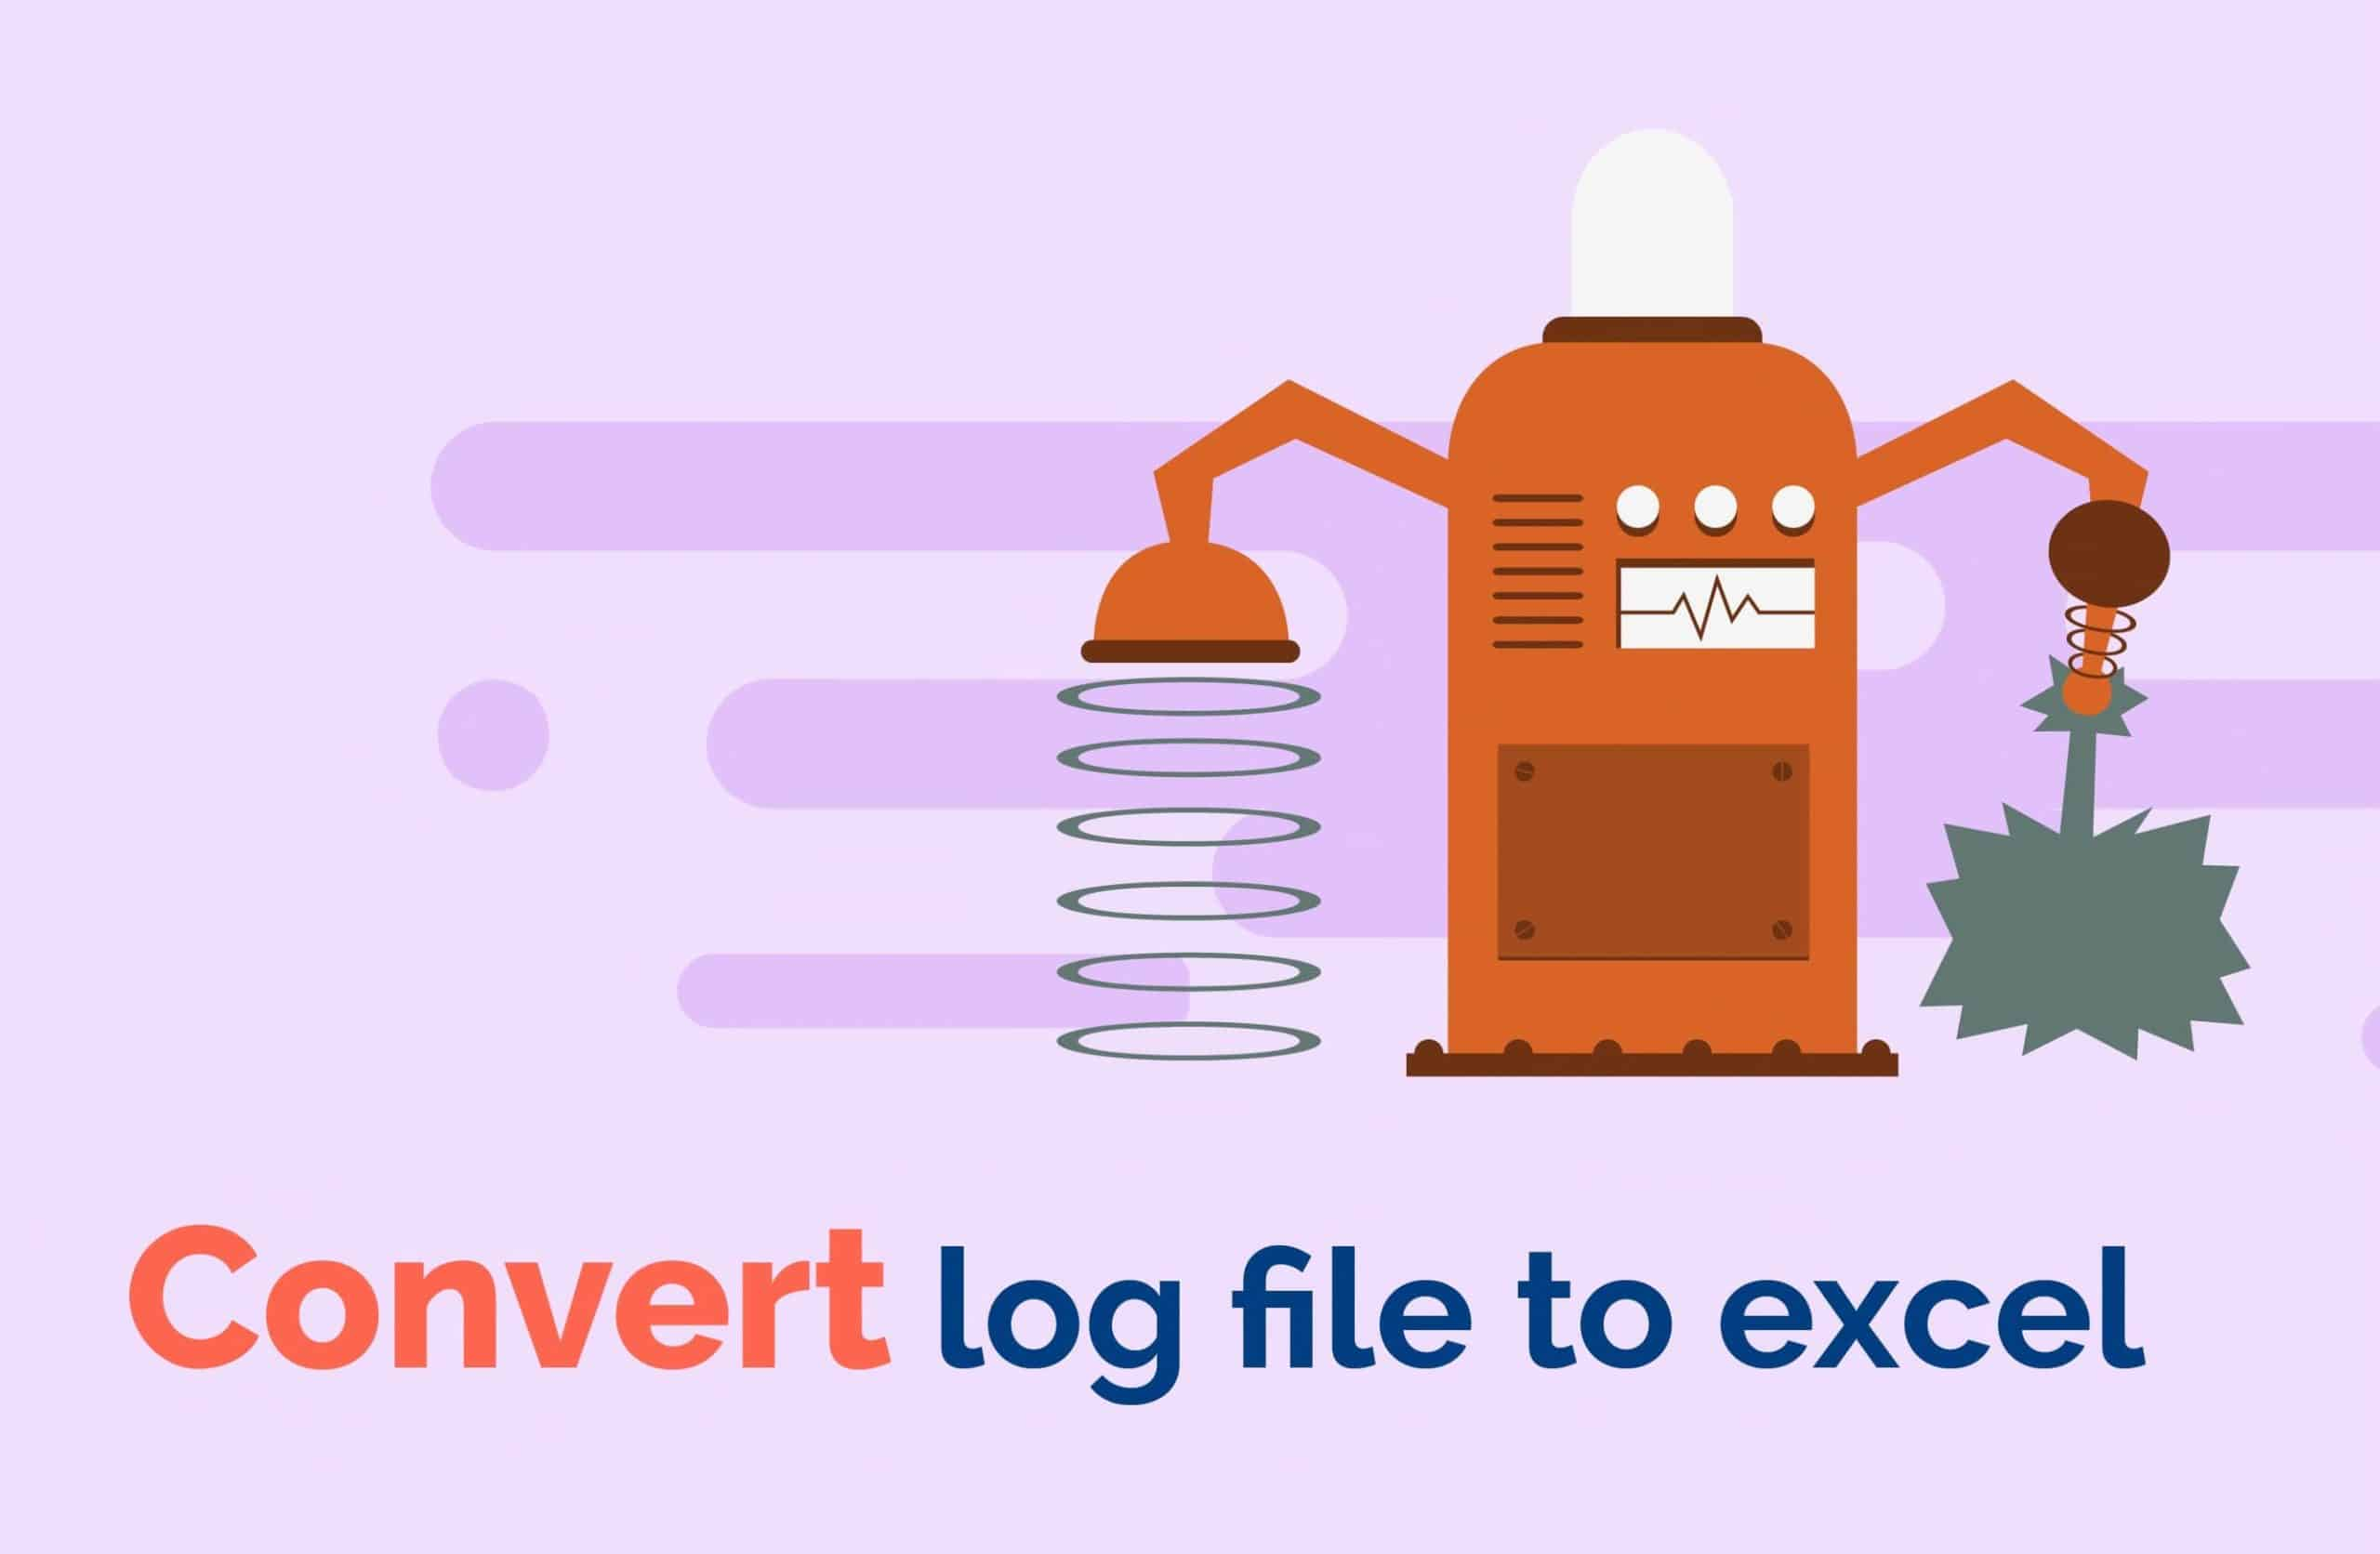 Convert log file to excel